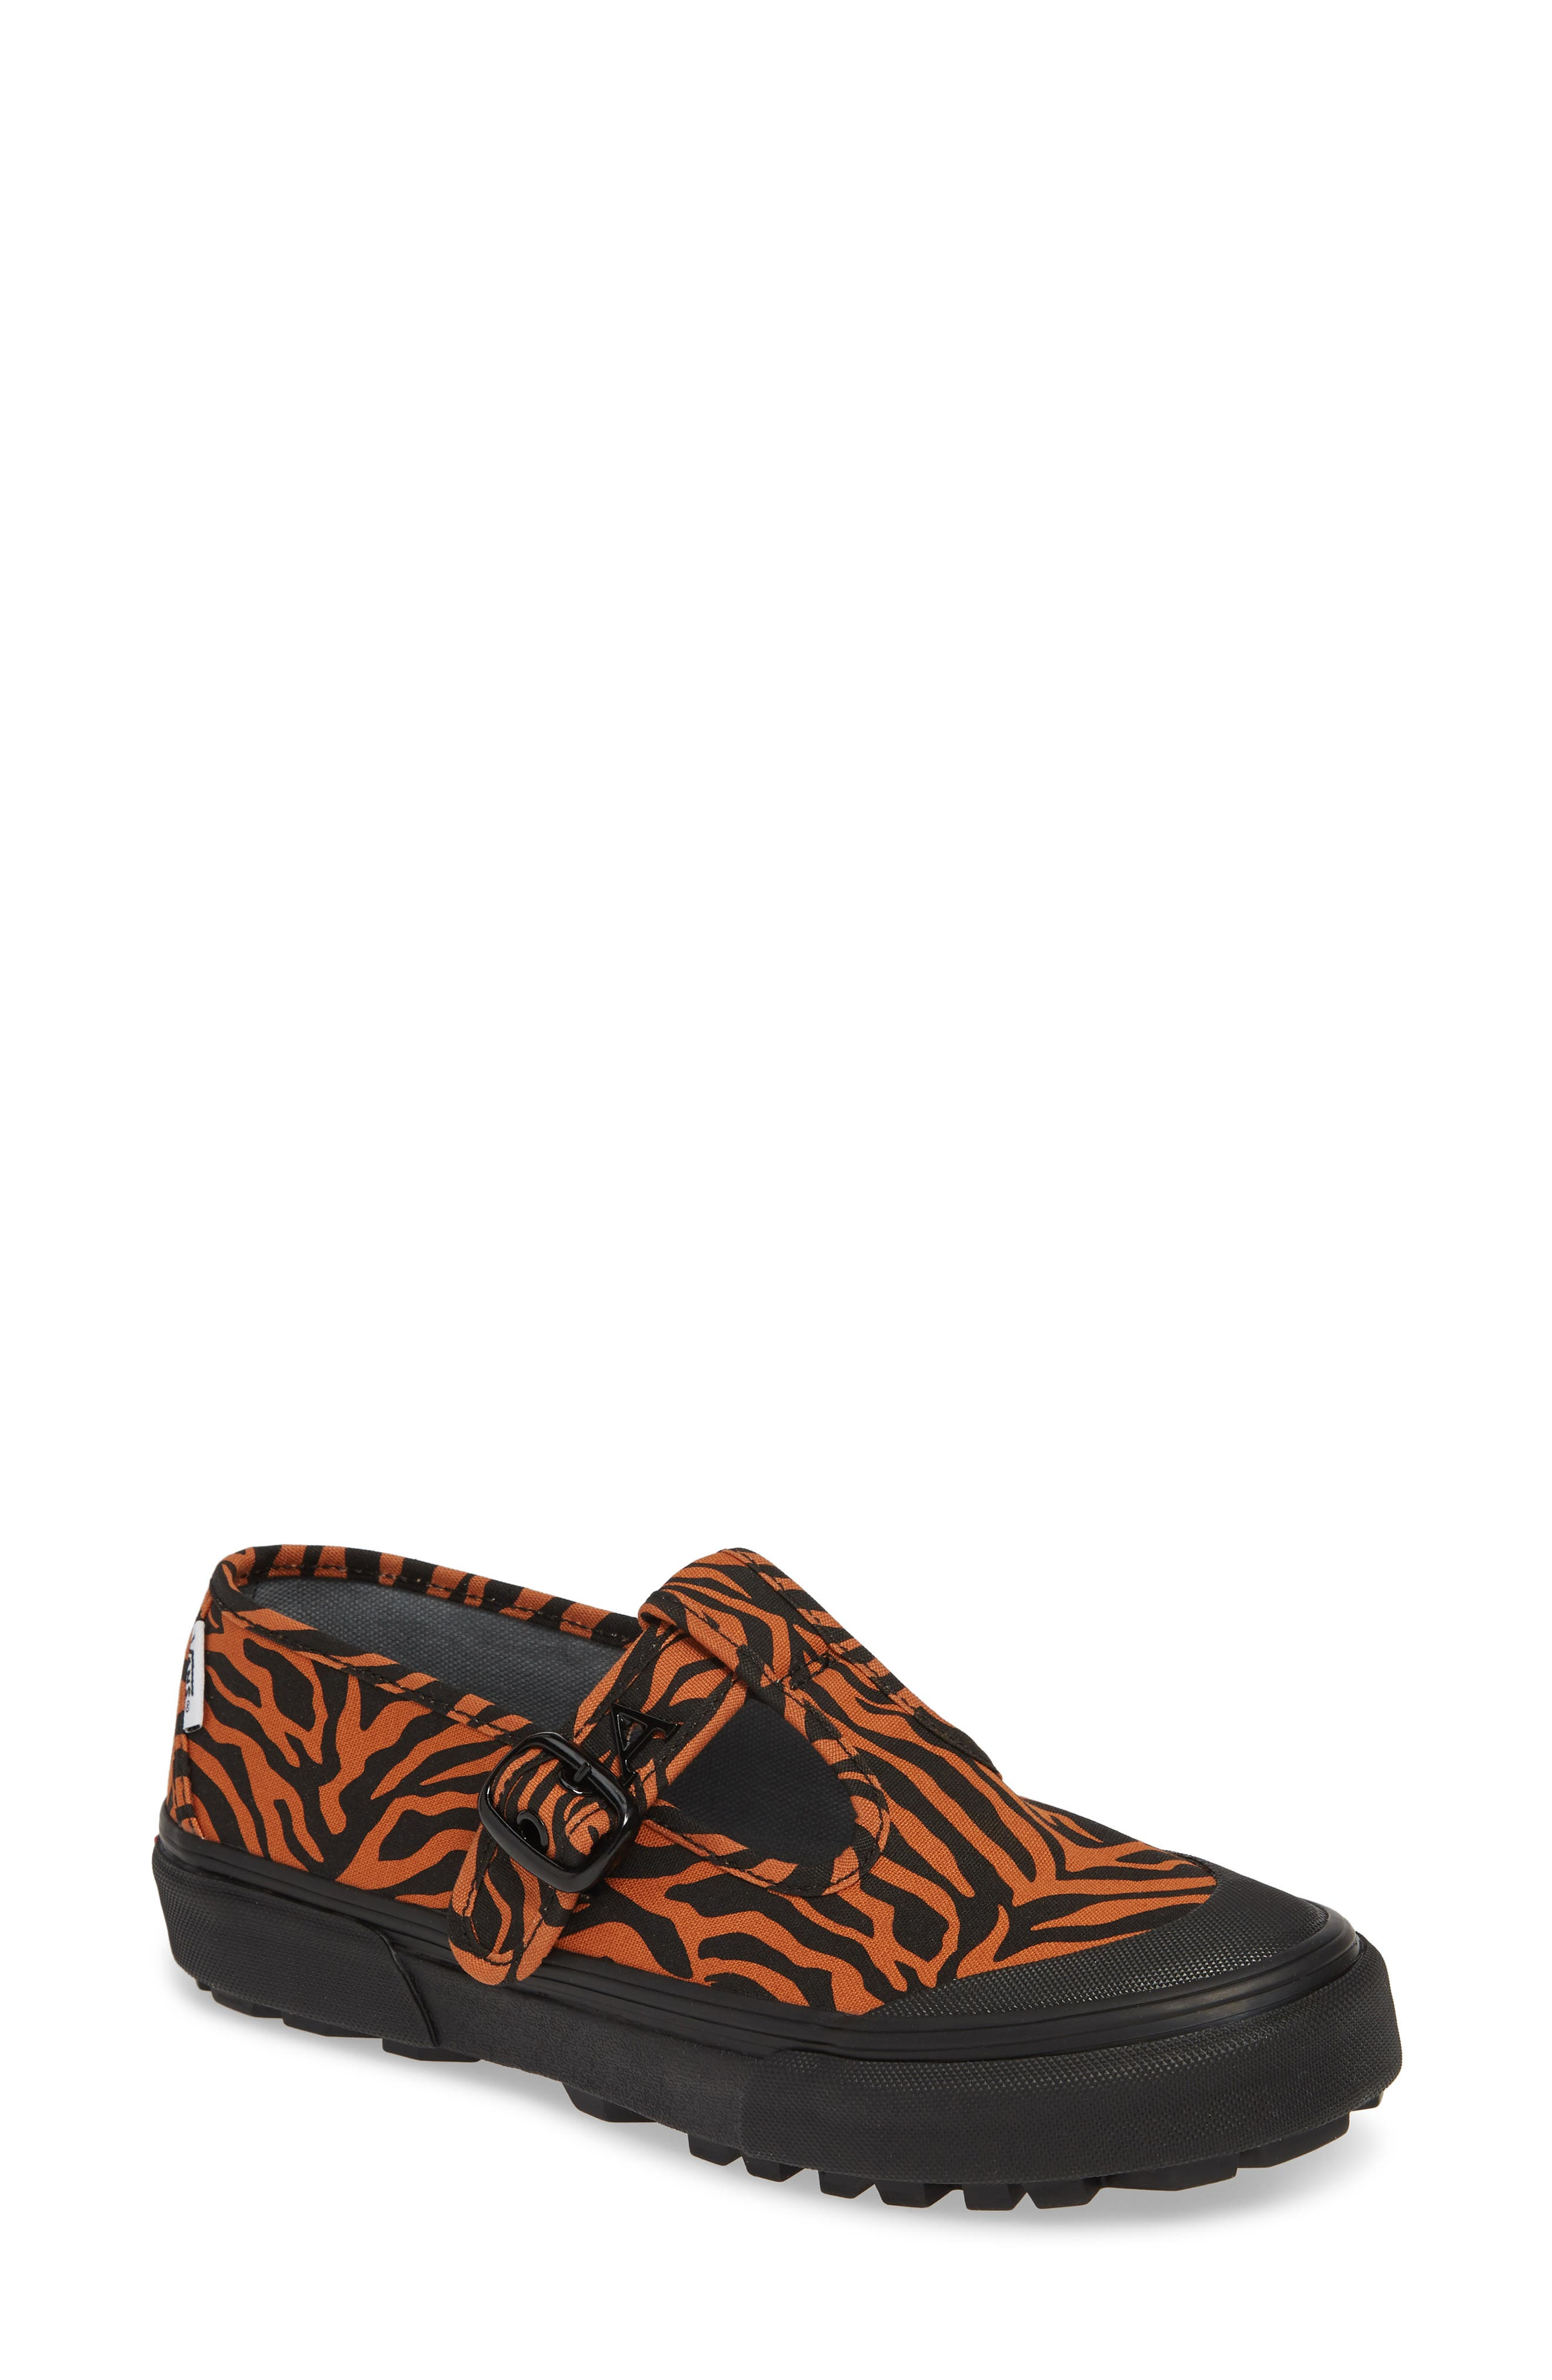 VANS, x Ashley Williams Style 38 Tiger Sneaker, Main thumbnail 1, color, TIGER/ BLACK